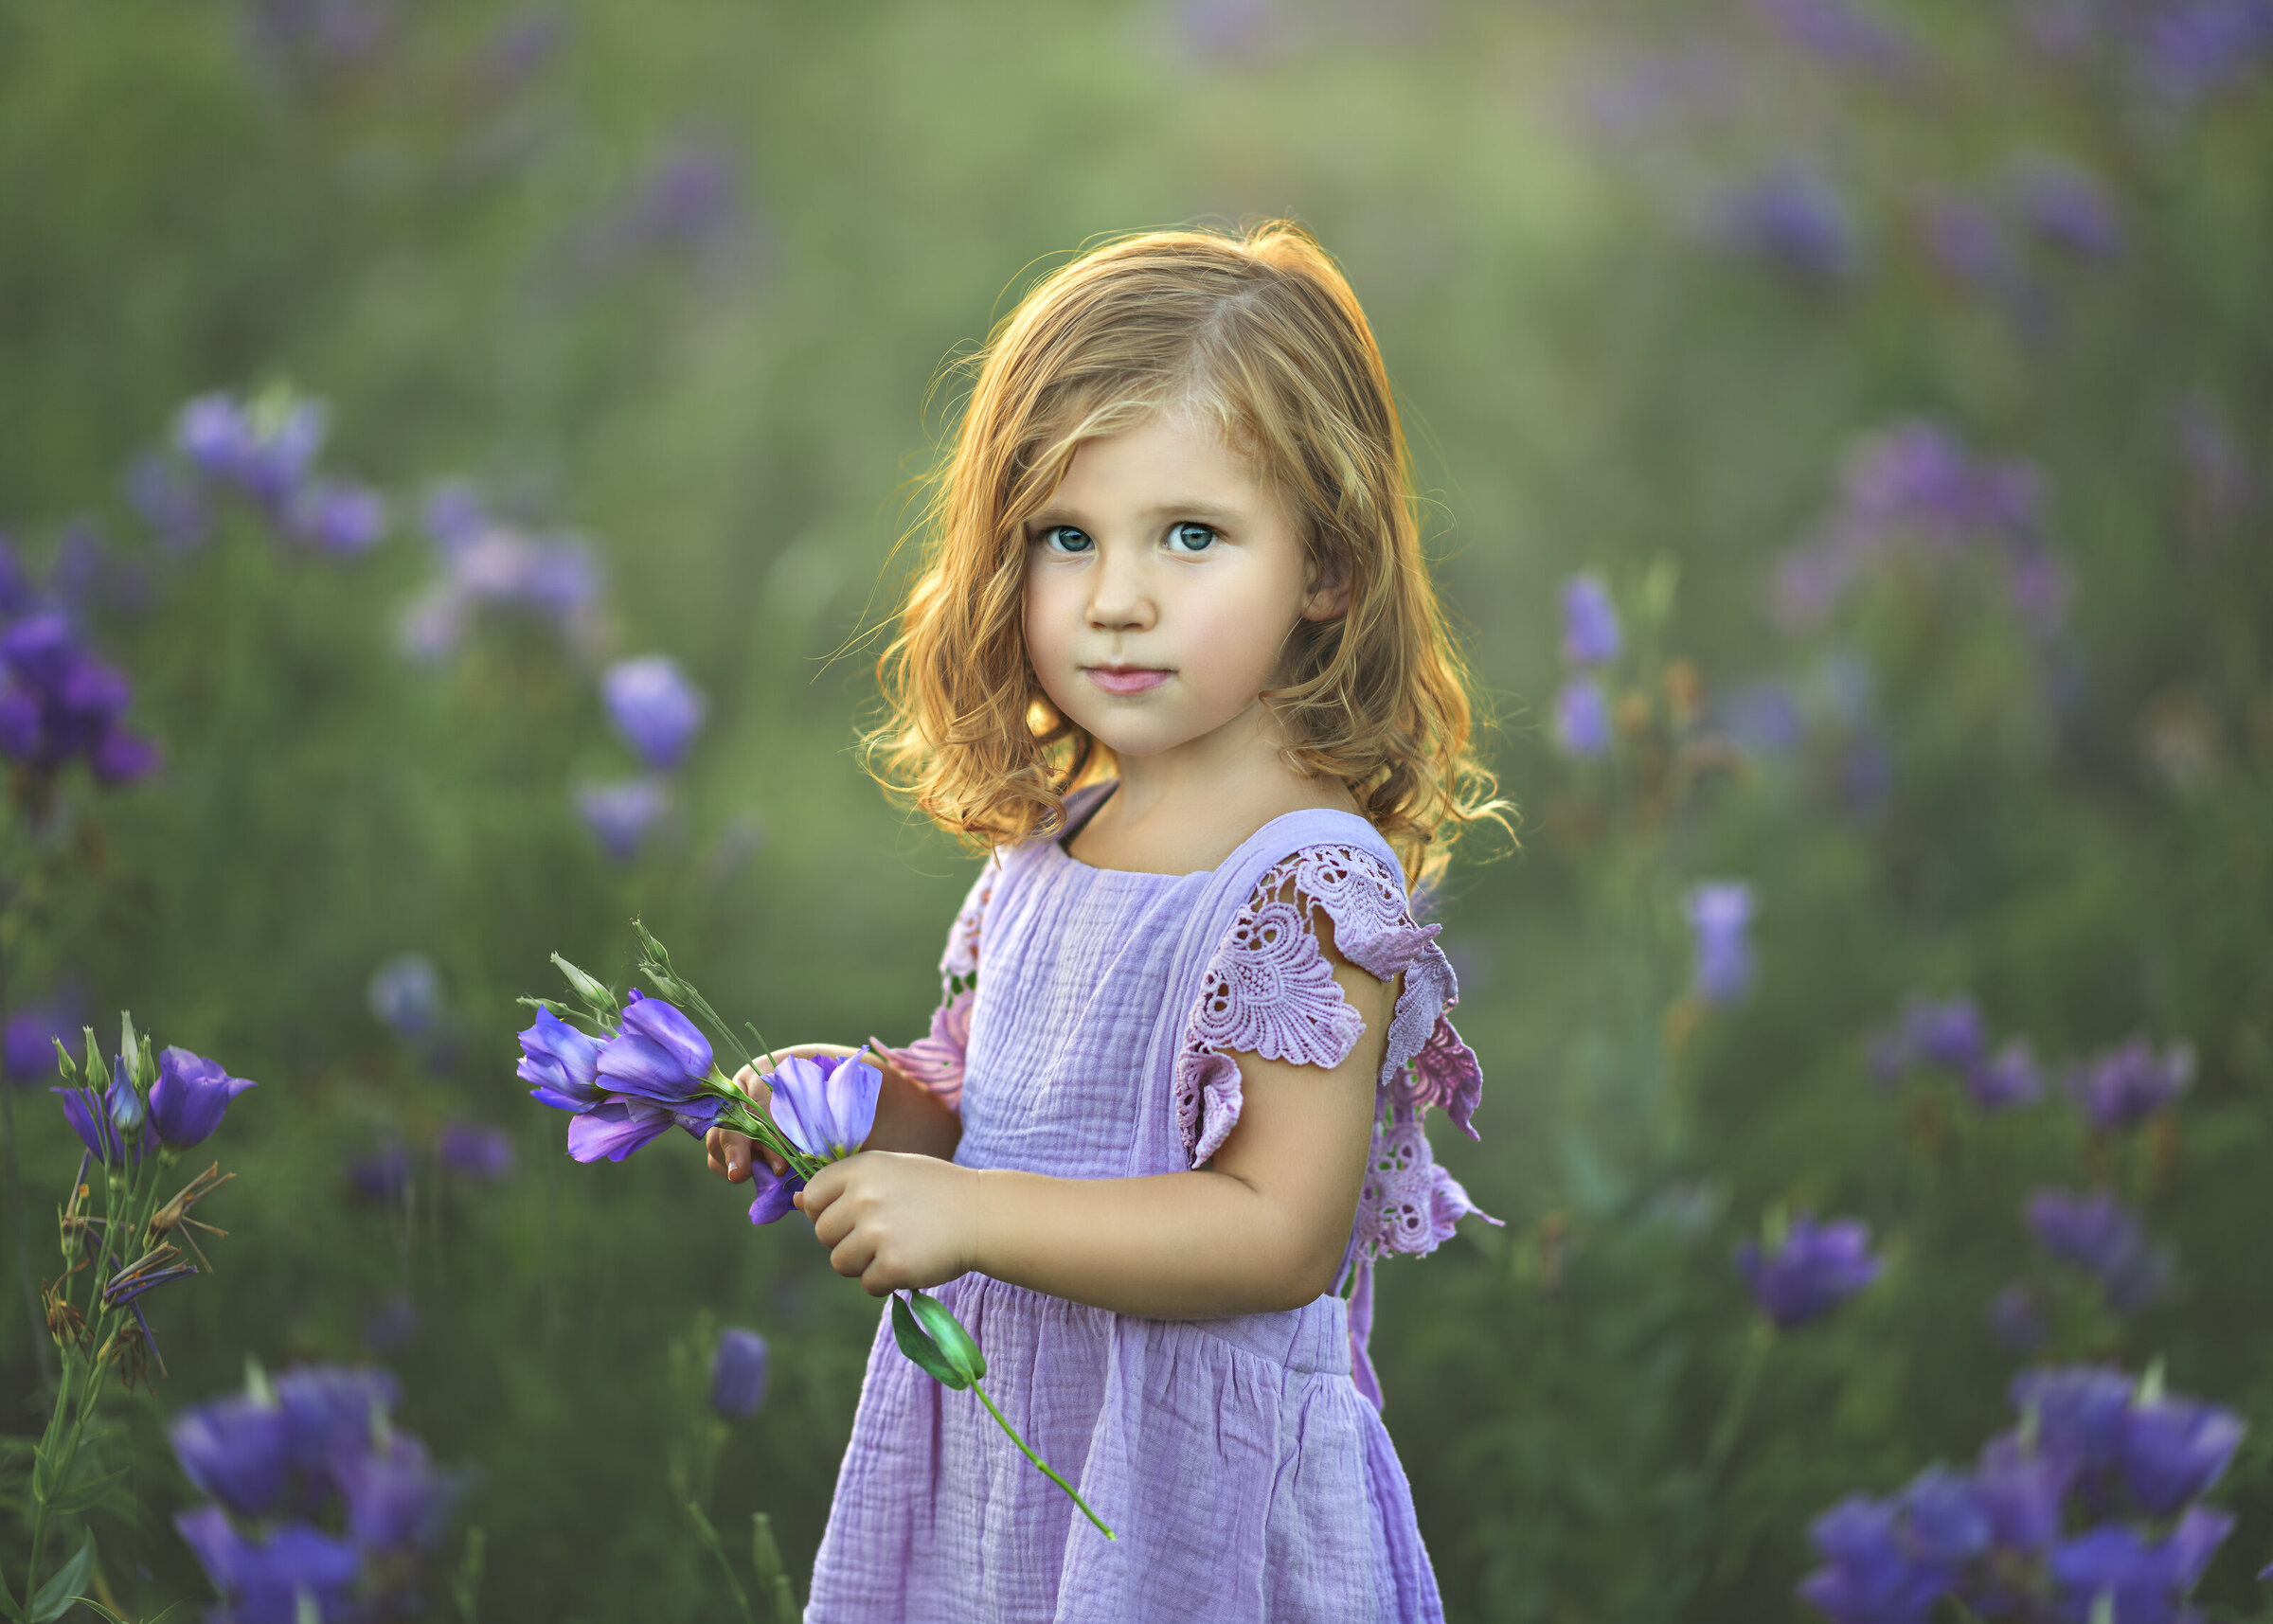 Fine art portrait photograph of little red head girl with curls in a  purple linen dress wit texas bluebell flowers in Crandall, Texas